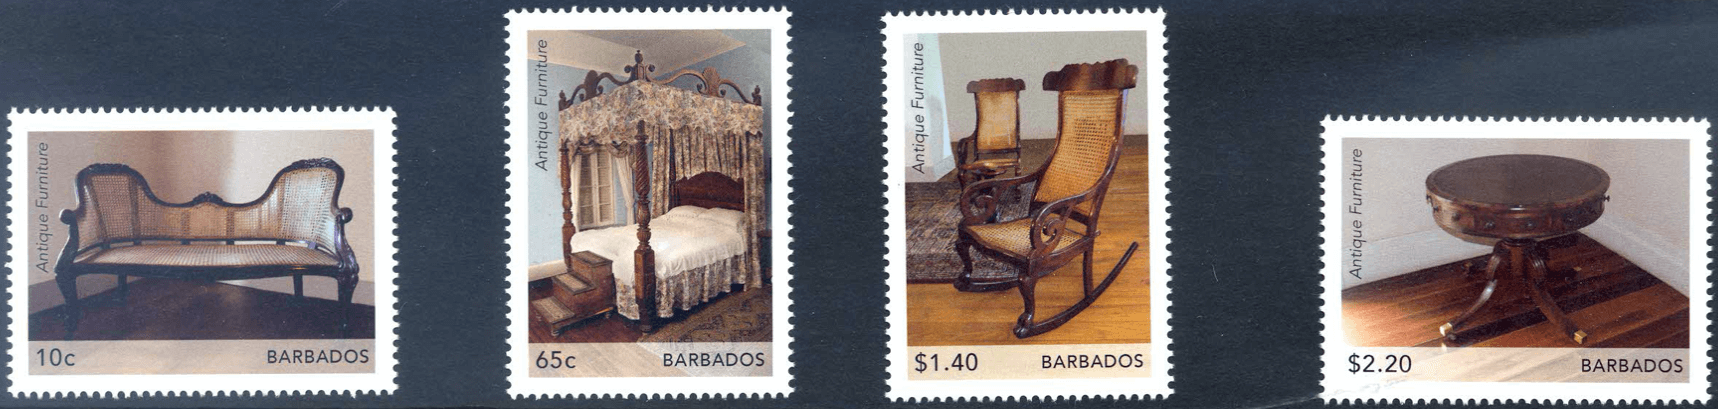 Barbados Antique Furniture stamps 2021